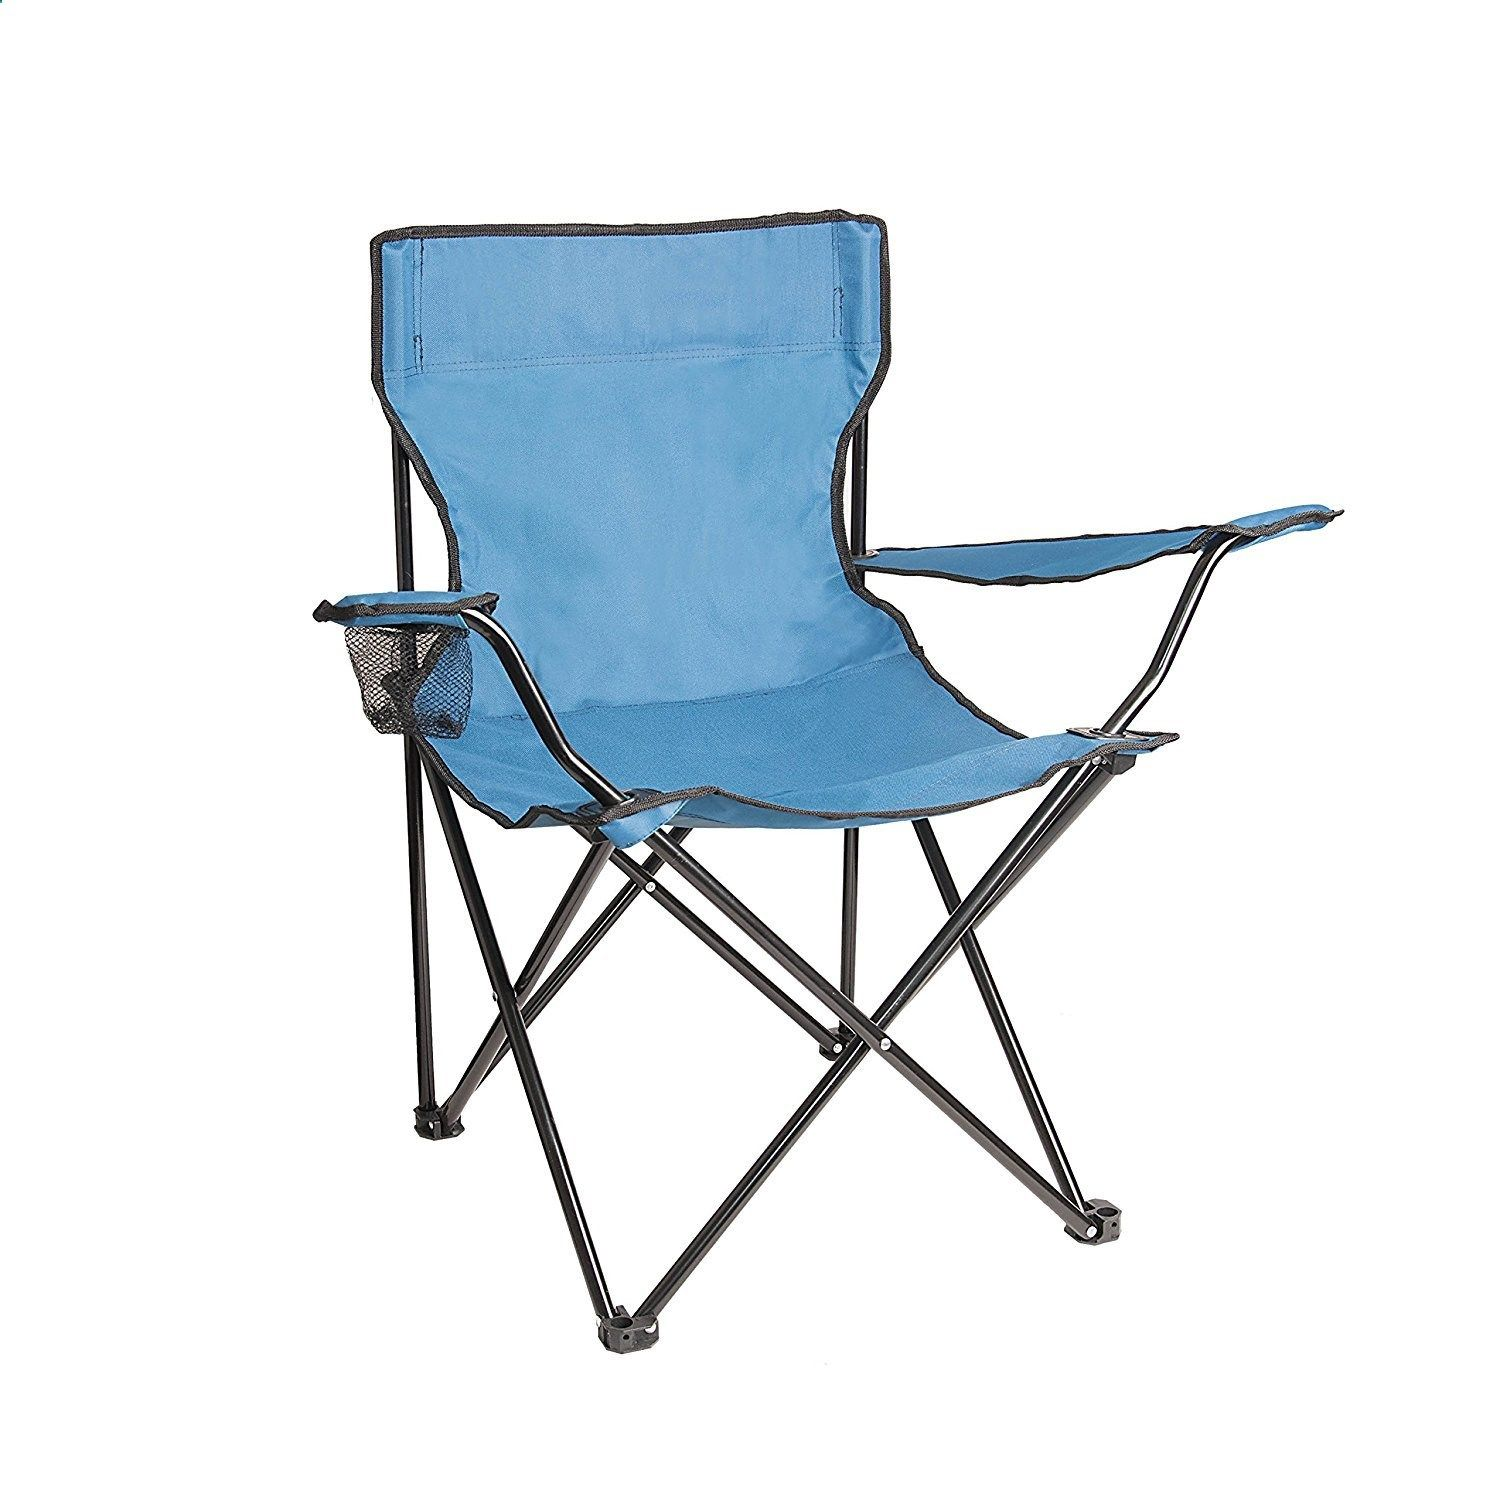 Camping Chairs Foldable Camping Chair Camping Chairs